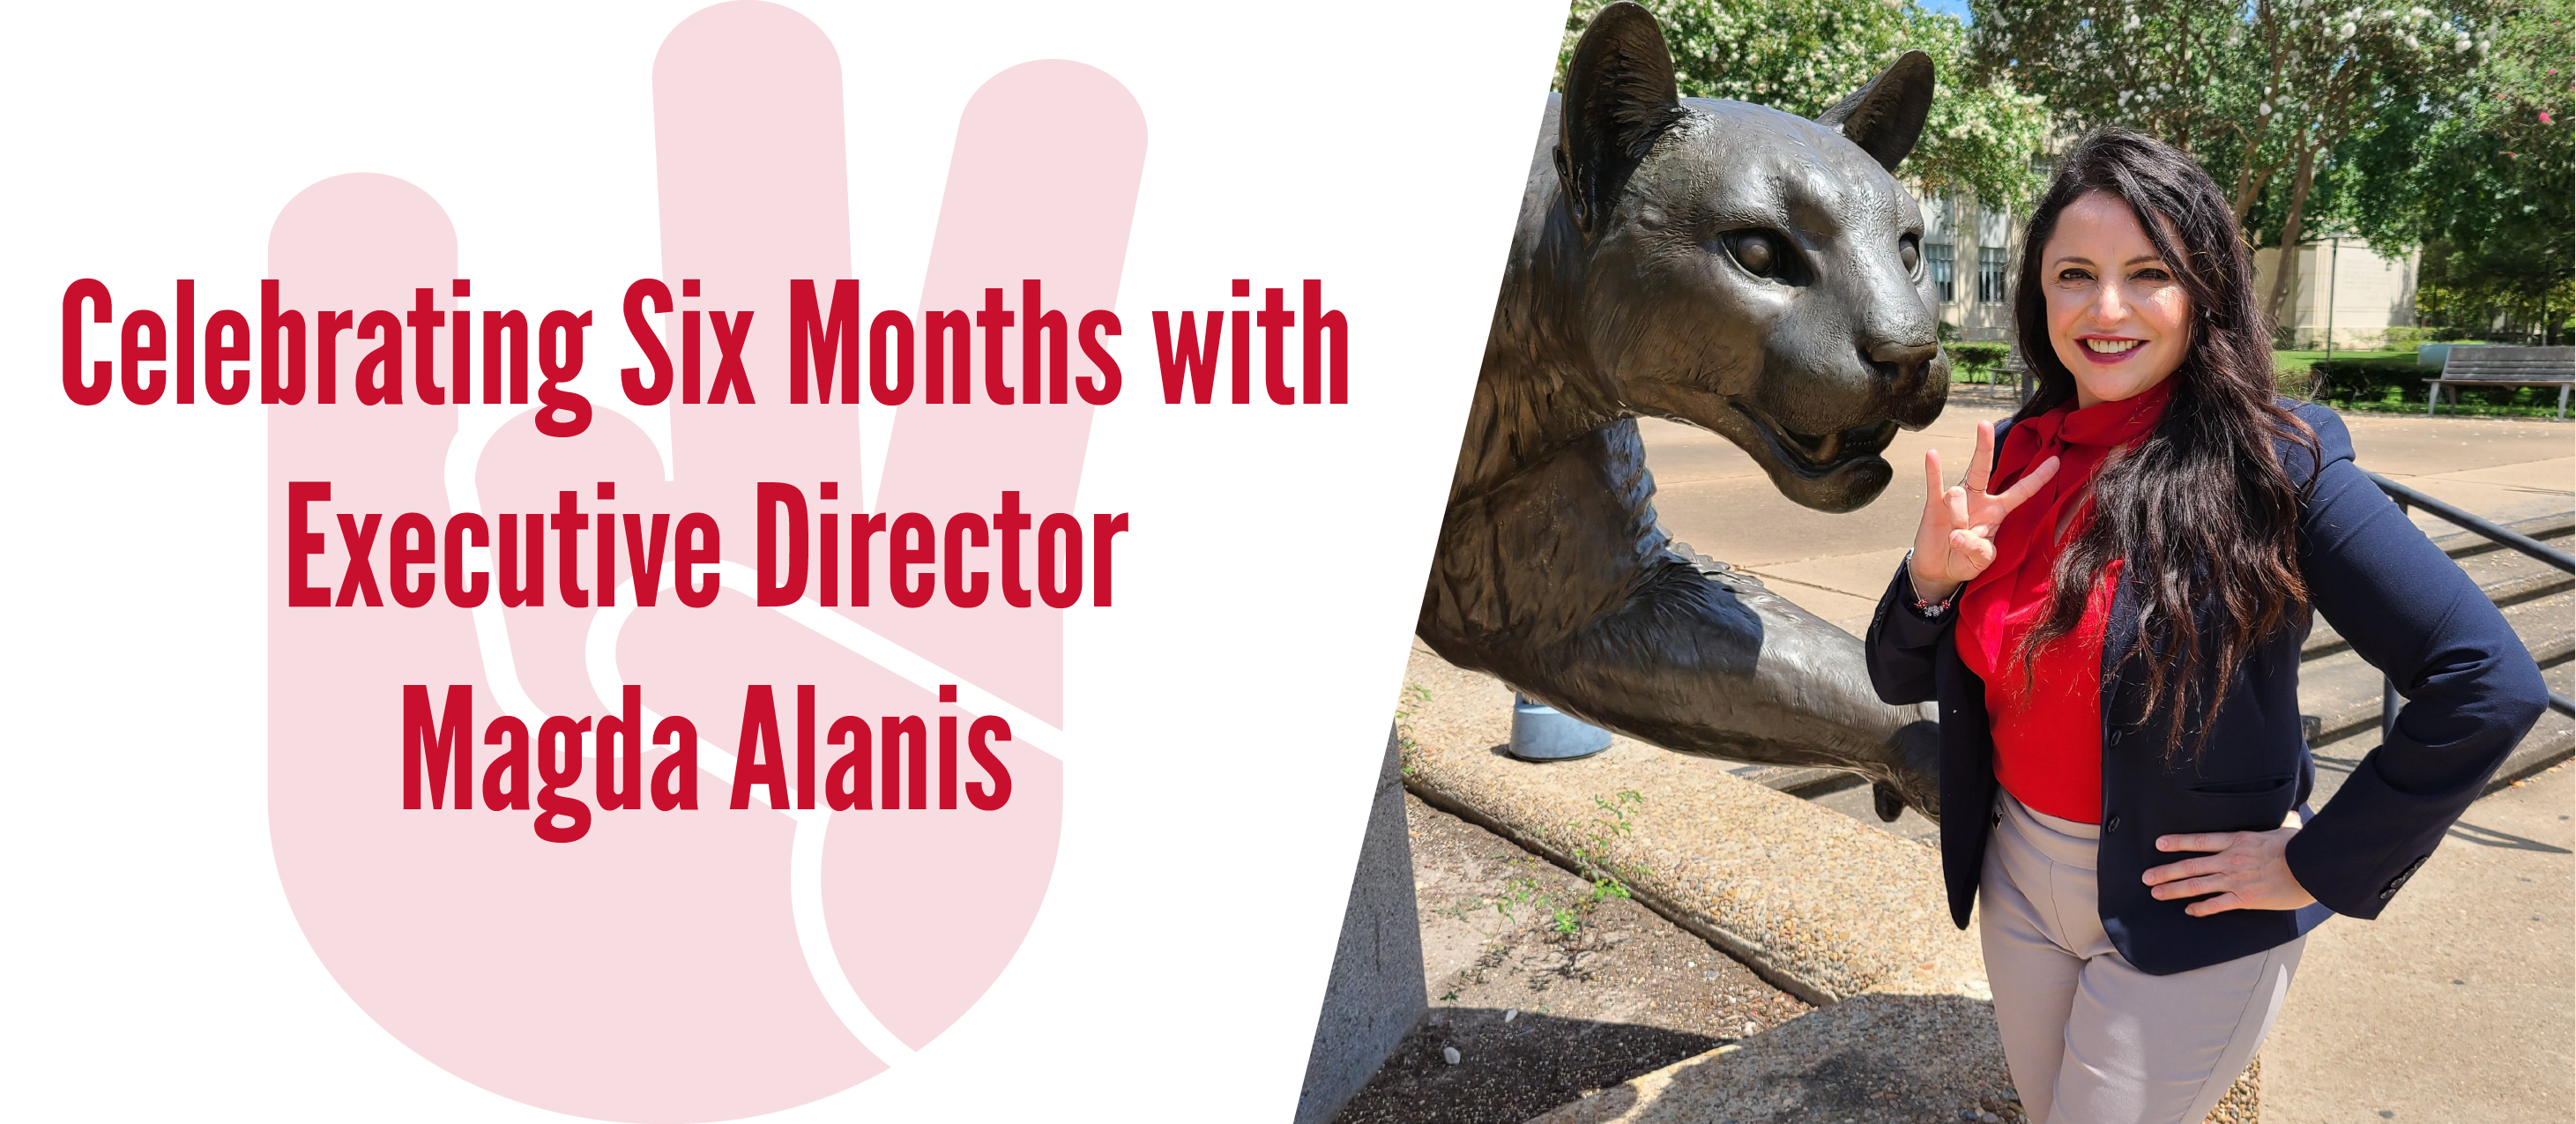 Celebrating Six Months with Executive Director Magda Alanis